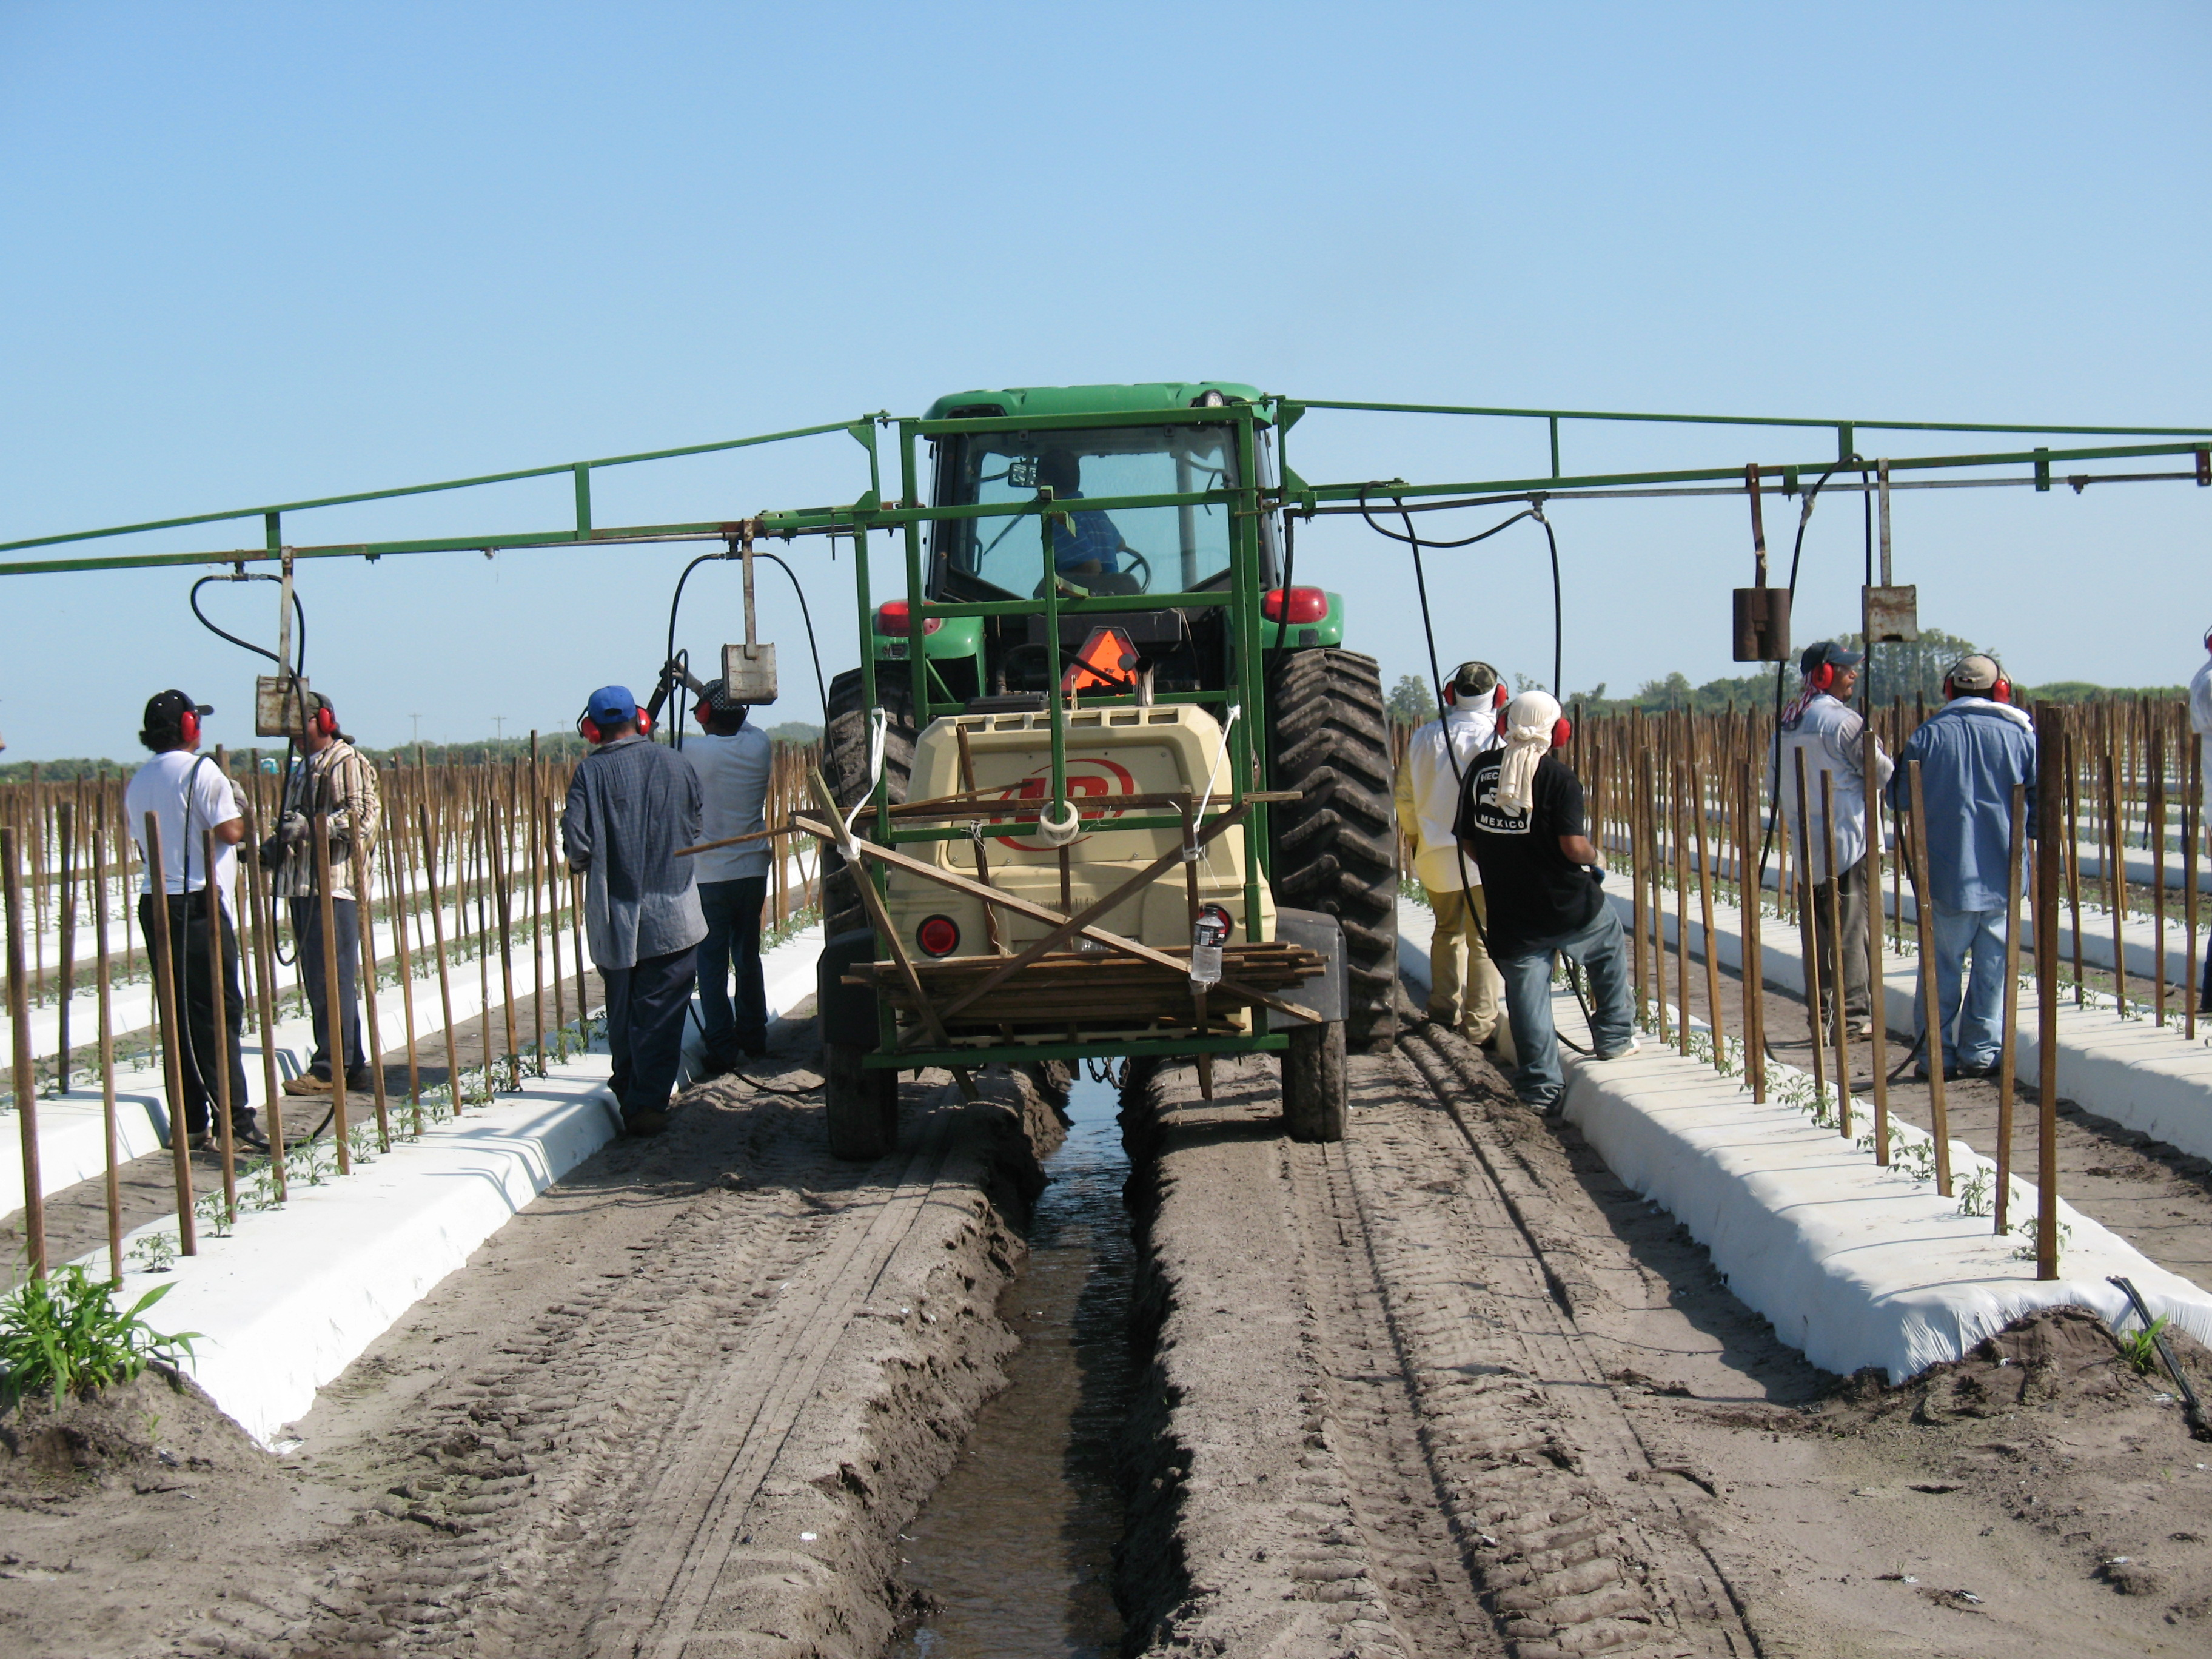 Several workers surrounding tractor